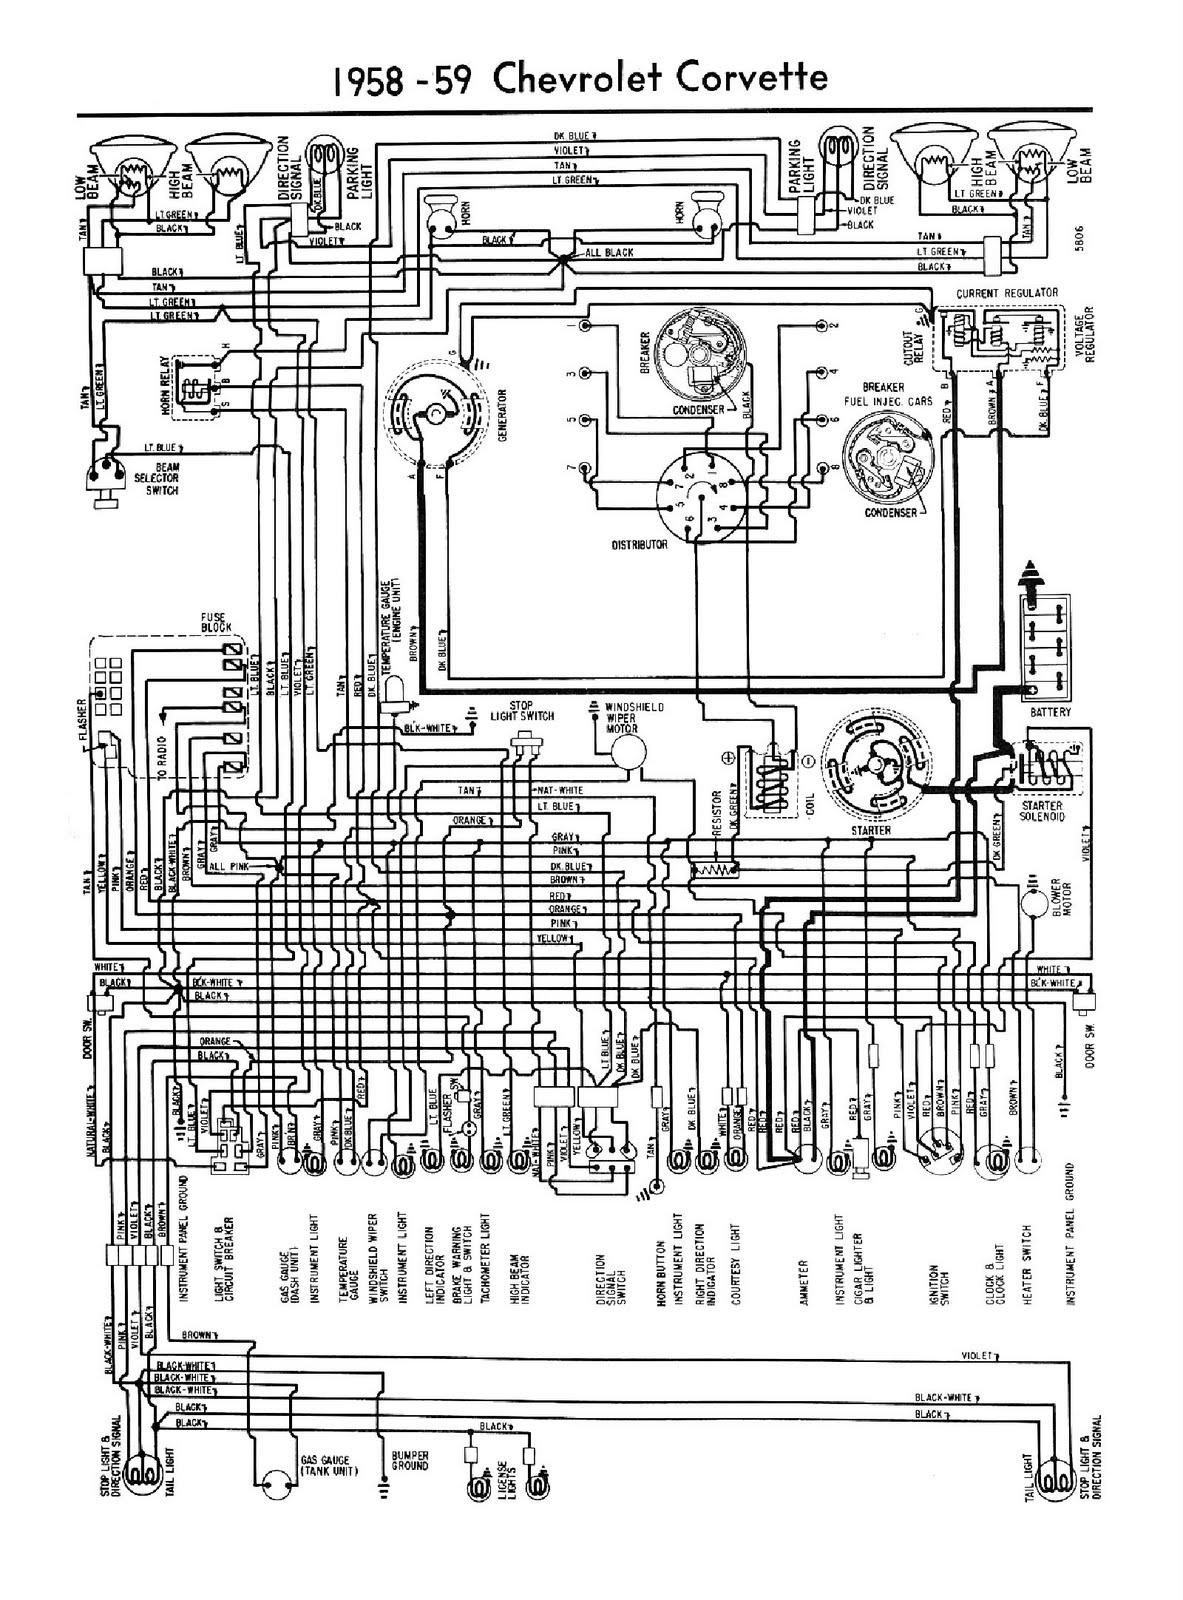 DIAGRAM] 40 Corvette Wiring Diagram FULL Version HD Quality ...